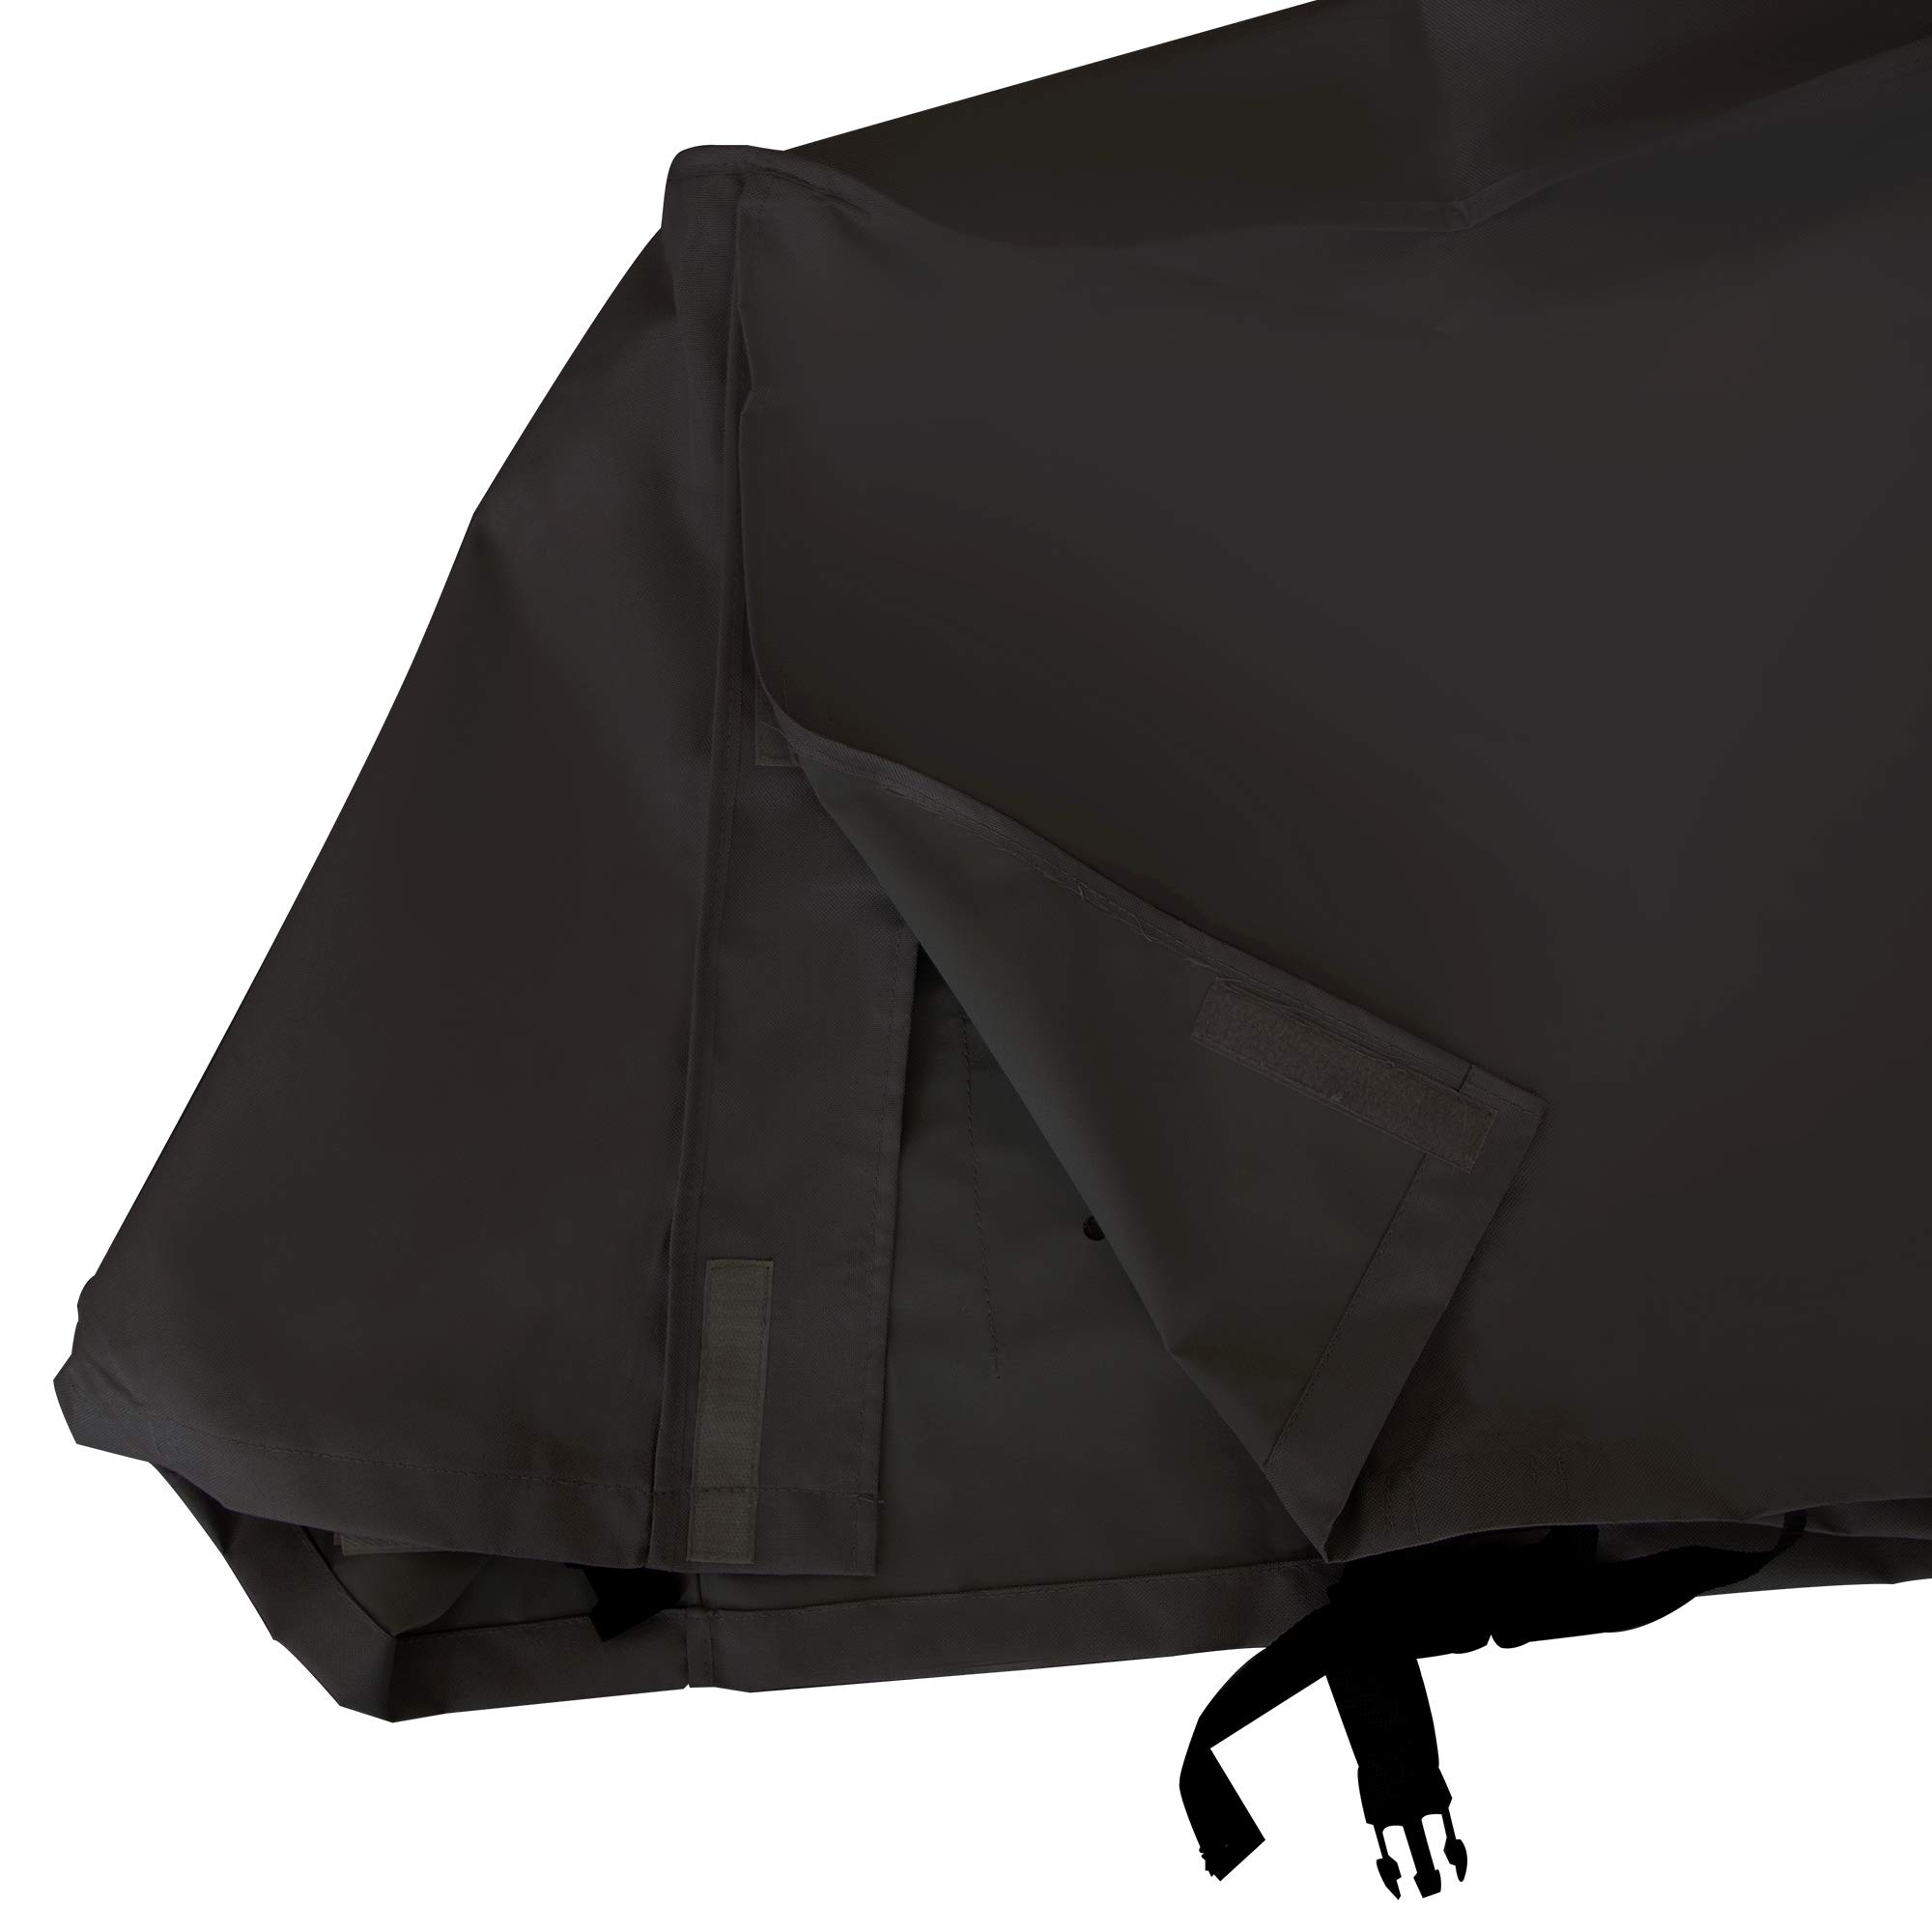 NEXTCOVER Universal Generator Cover-600D Canvas Heavy Duty Waterproof Fade Resistant,Fits Generator Up to 38'' Long and 28'' Wide and 30'' High,Black Color,N21G810C by NEXTCOVER (Image #4)